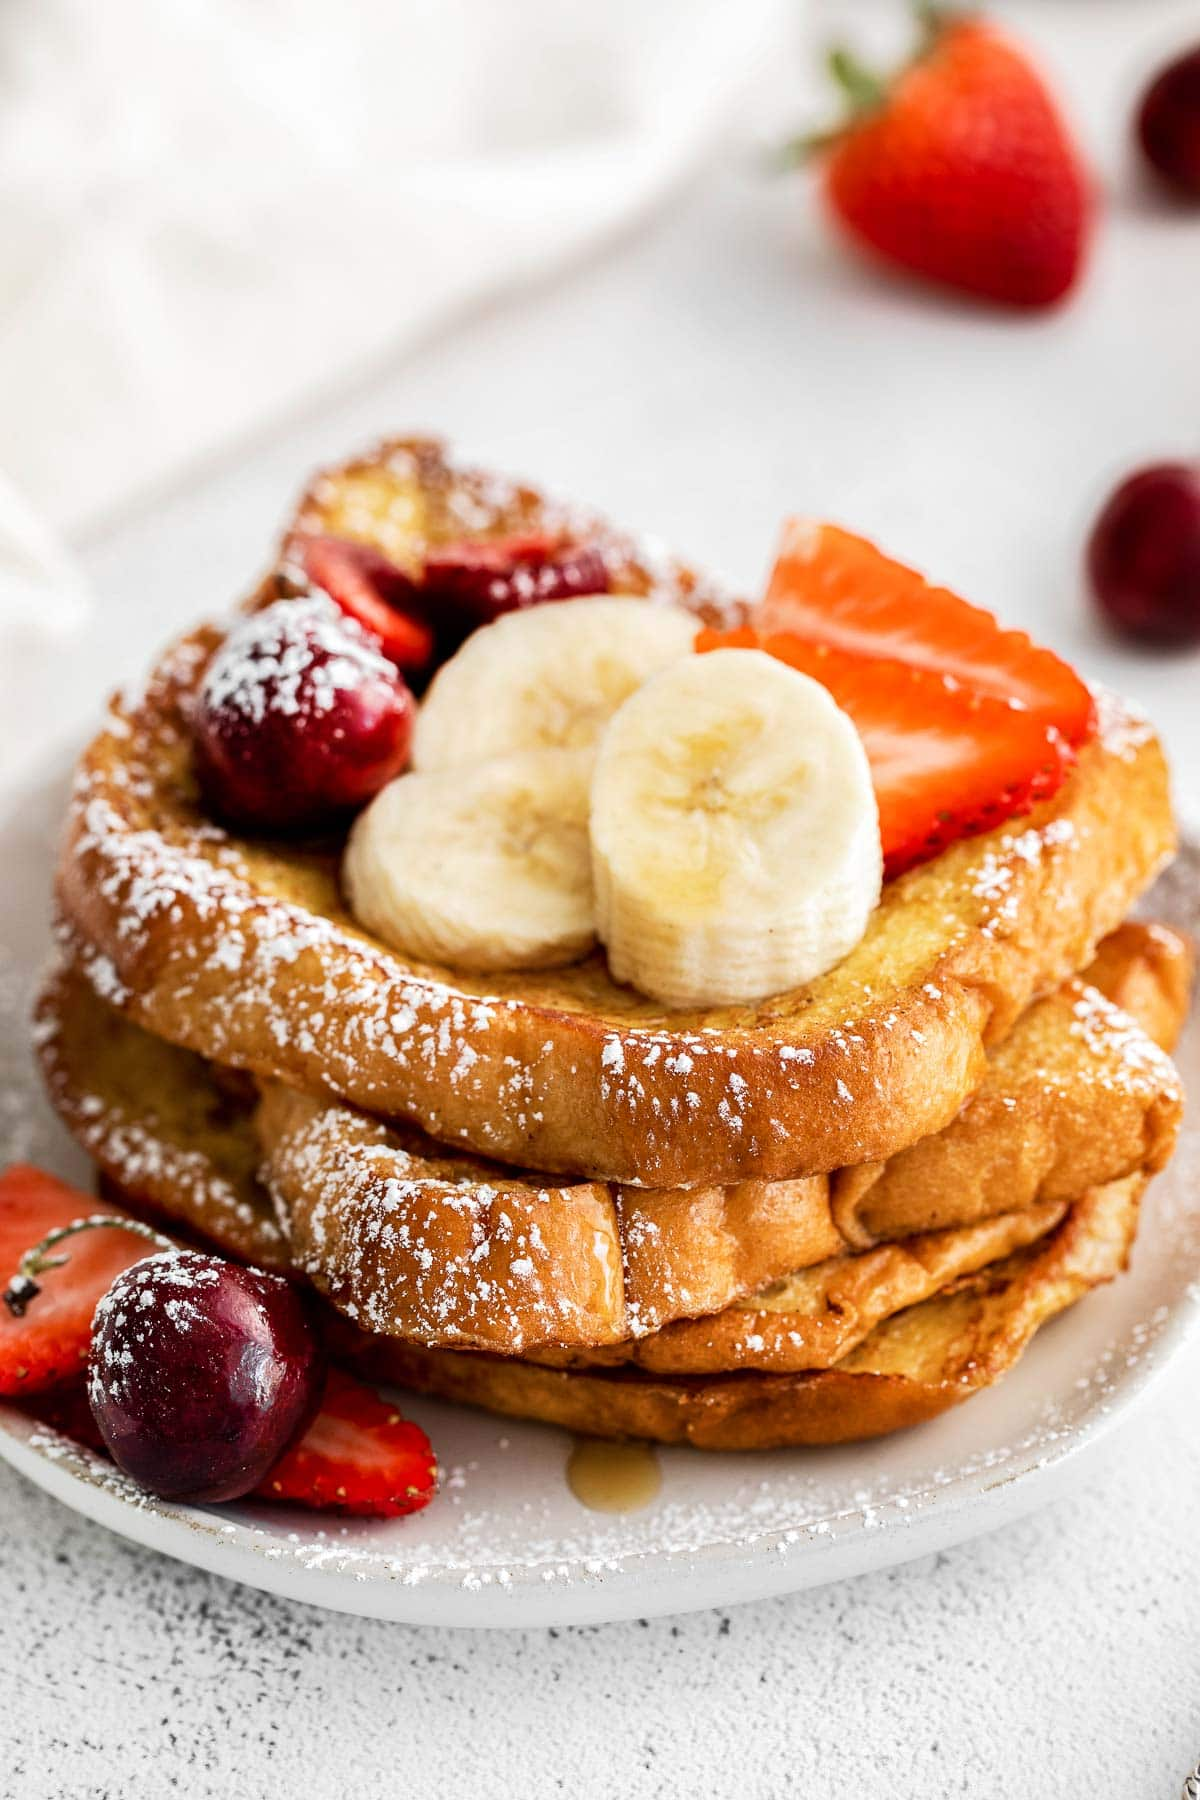 closeup of a stack of french toast topped with bananas, strawberries and powered sugar